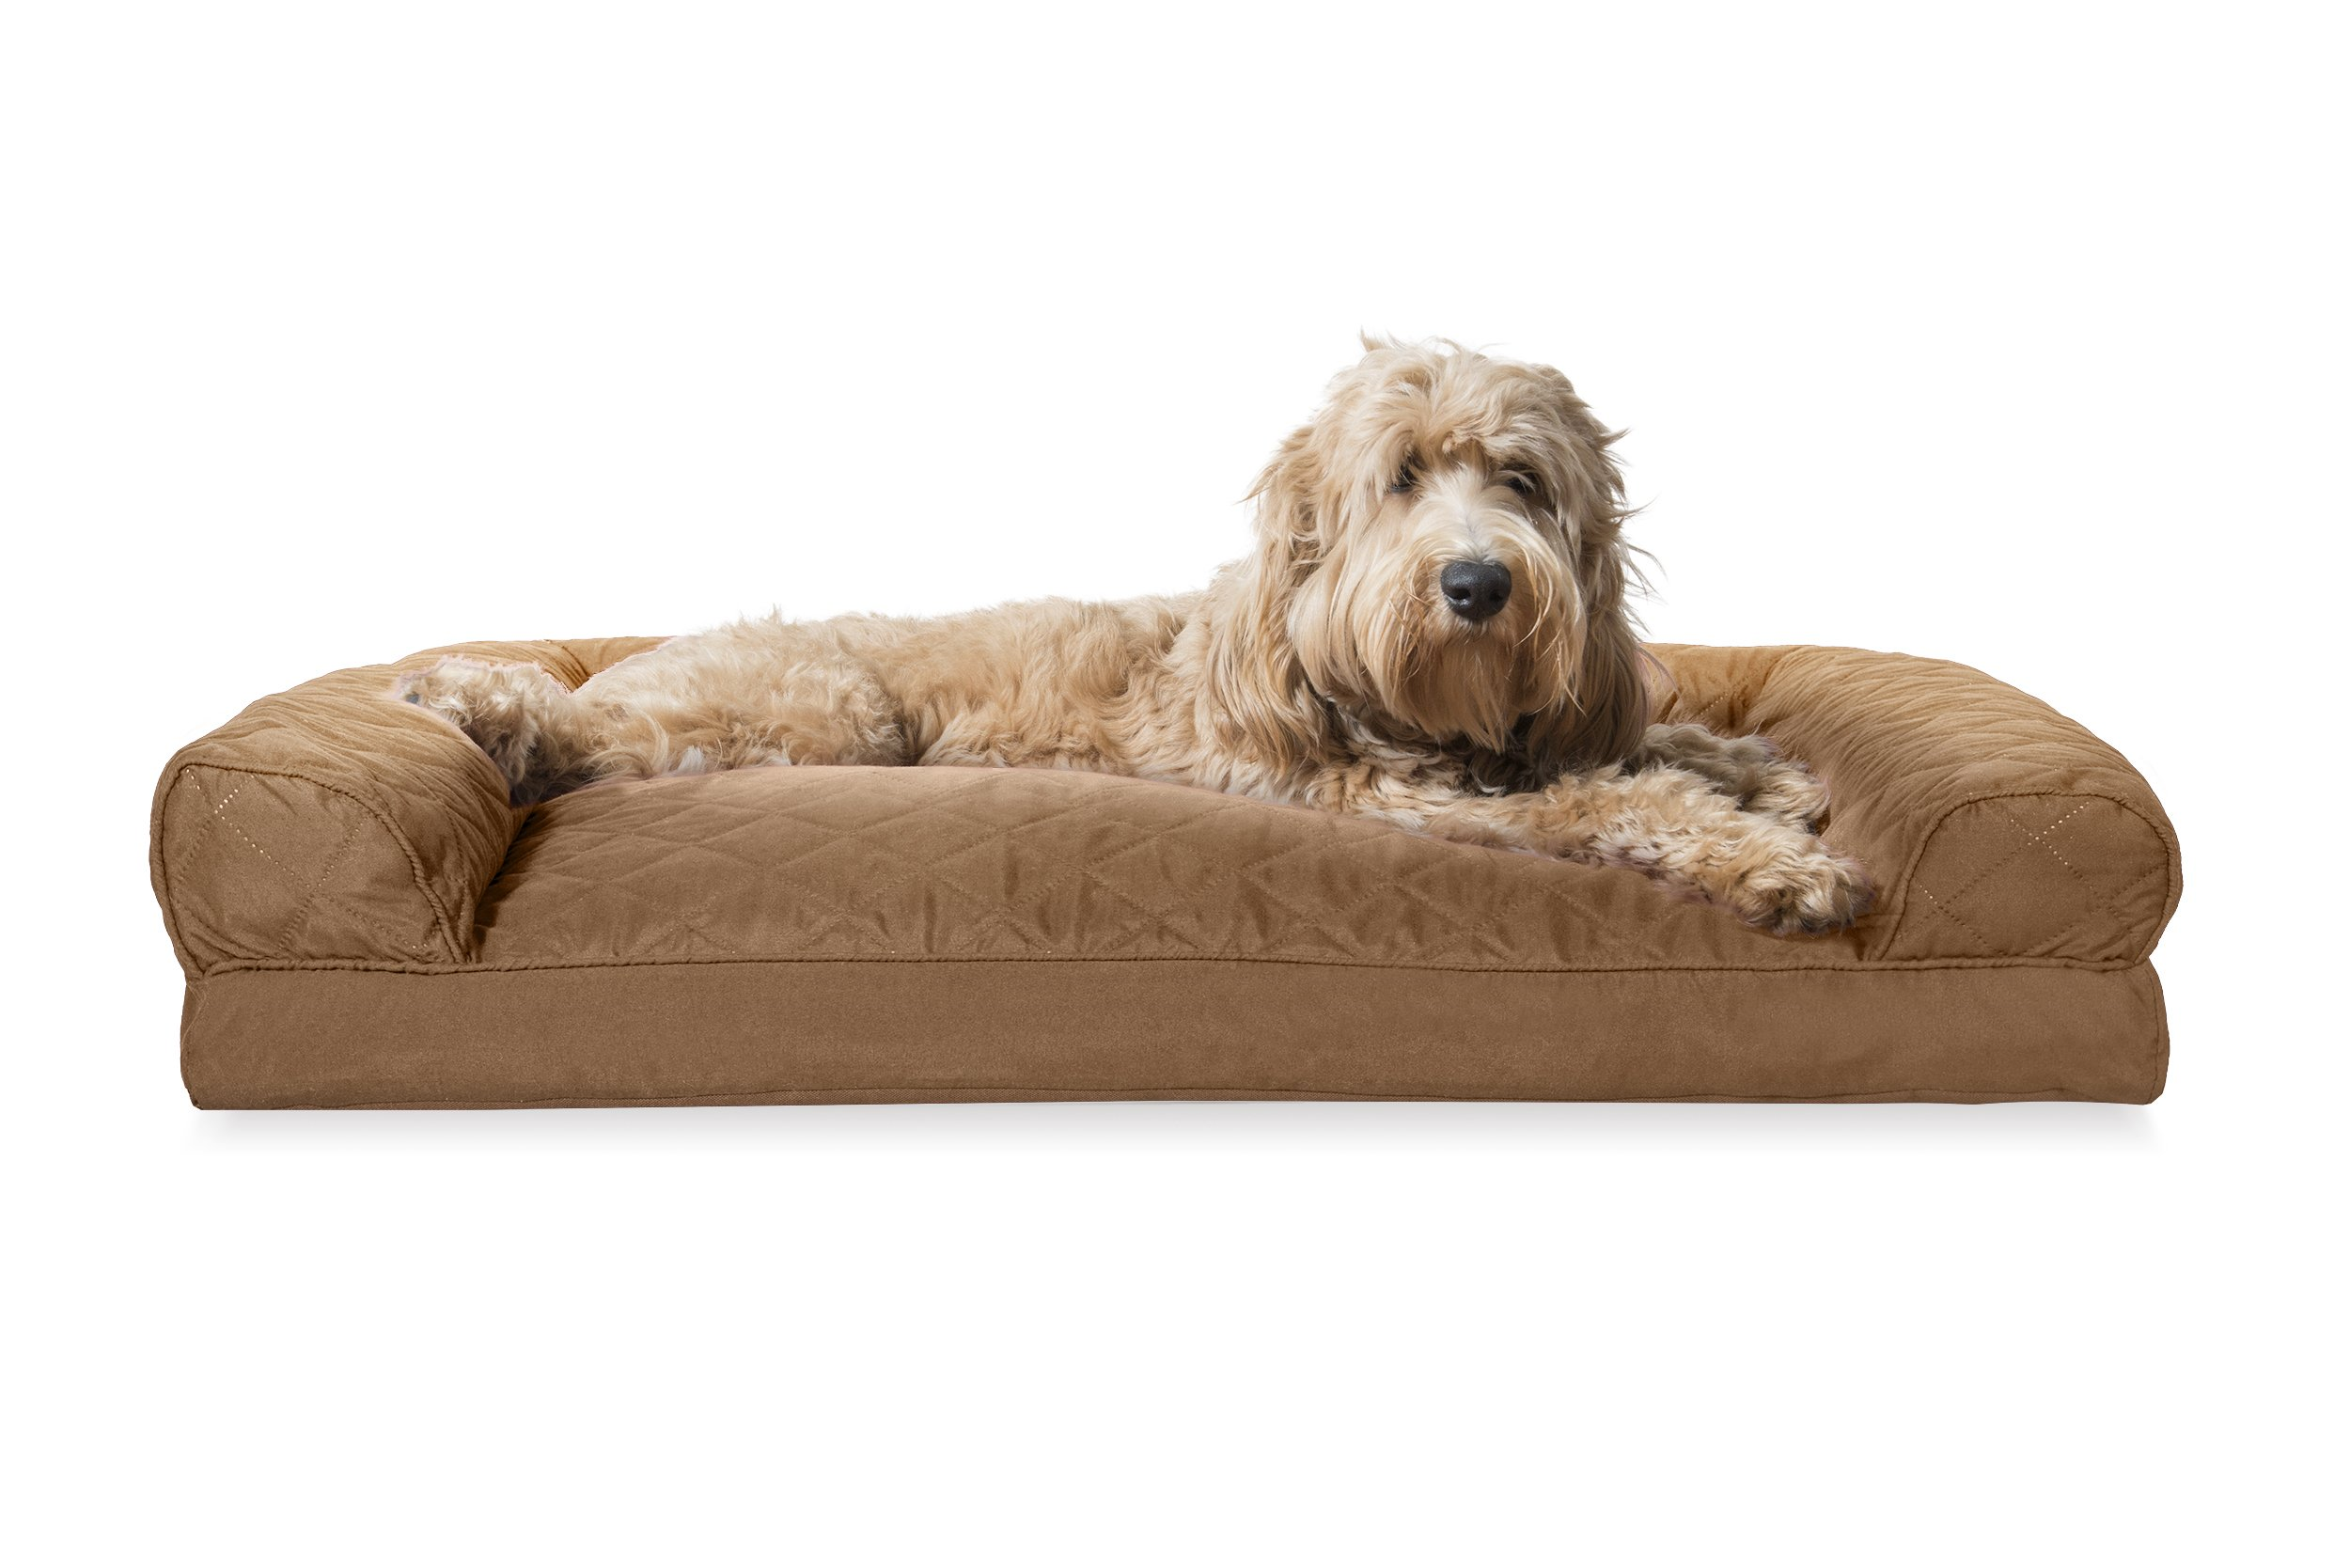 Attirant FurHaven Pet Dog Bed | Pillow Sofa Style Couch Pet Bed For Dogs U0026 Cats    Available In Multiple Colors U0026 Styles